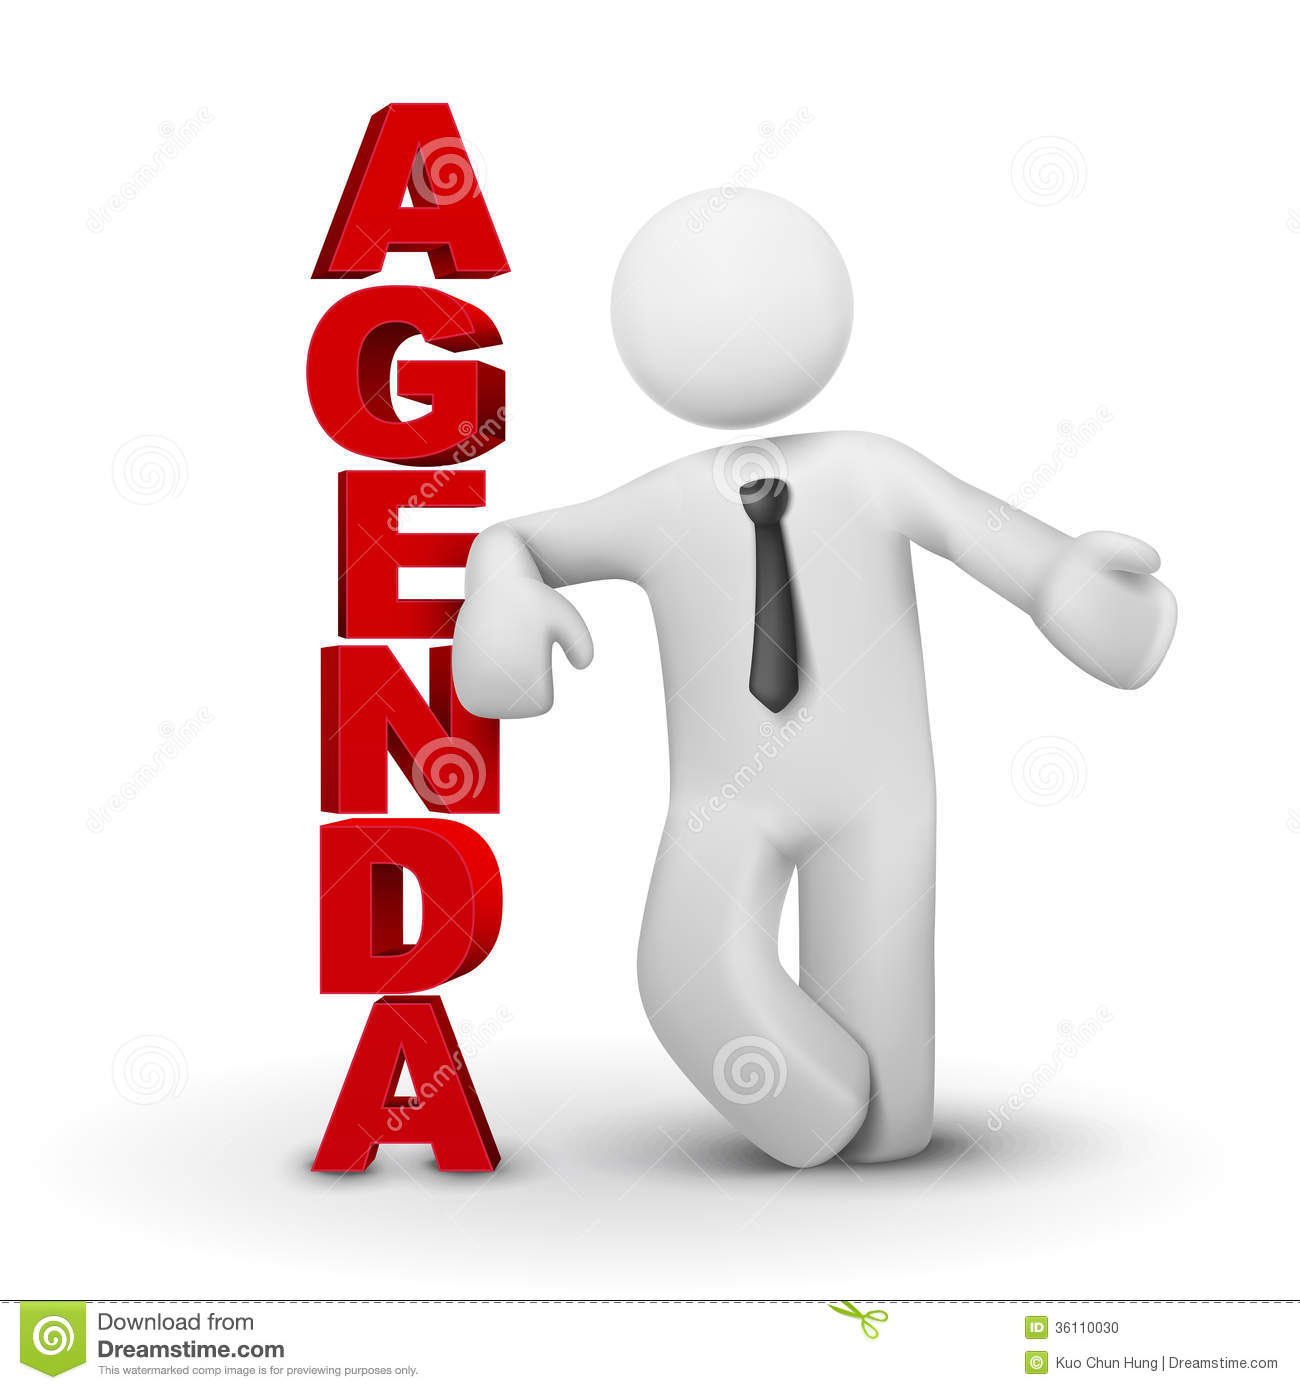 d-business-man-presenting-concept-agenda-white-background-36110030.jpg